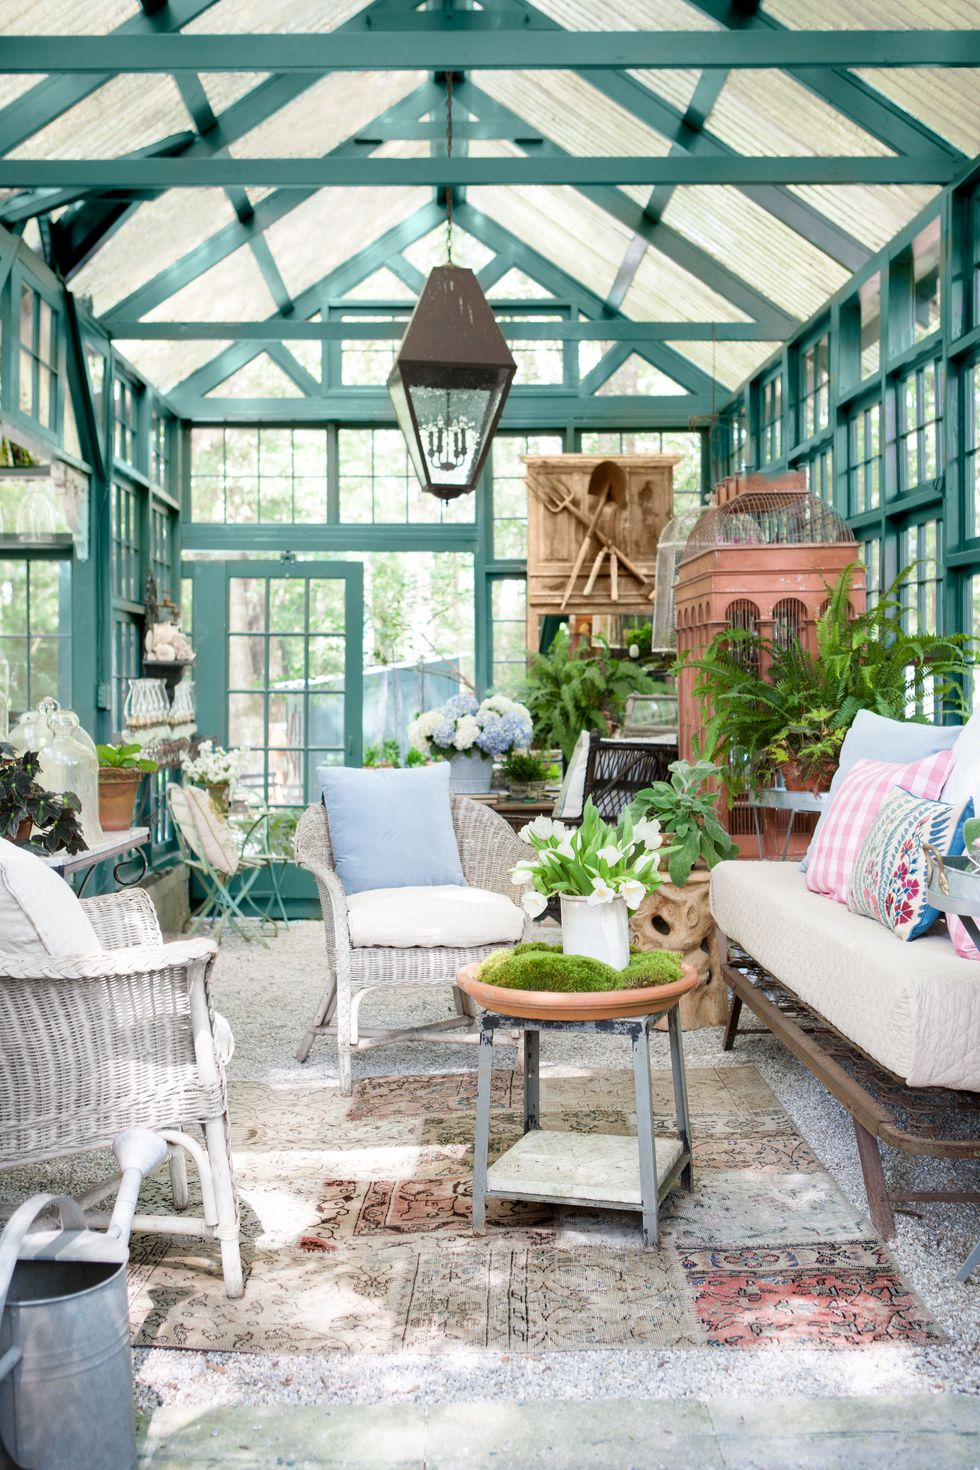 Chic she shed garden retreat with luxurious interior in backyard by Susanne Hudson. Come explore She Shed Chic, Potting Shed & Backyard Inspiration.